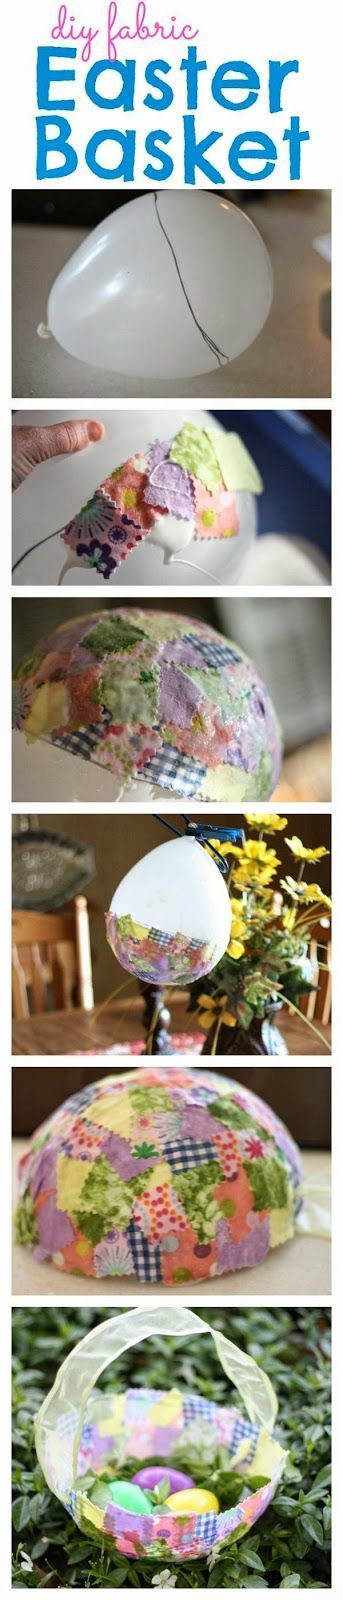 Adorable Fabric Collage Easter Basket made with a balloon!: